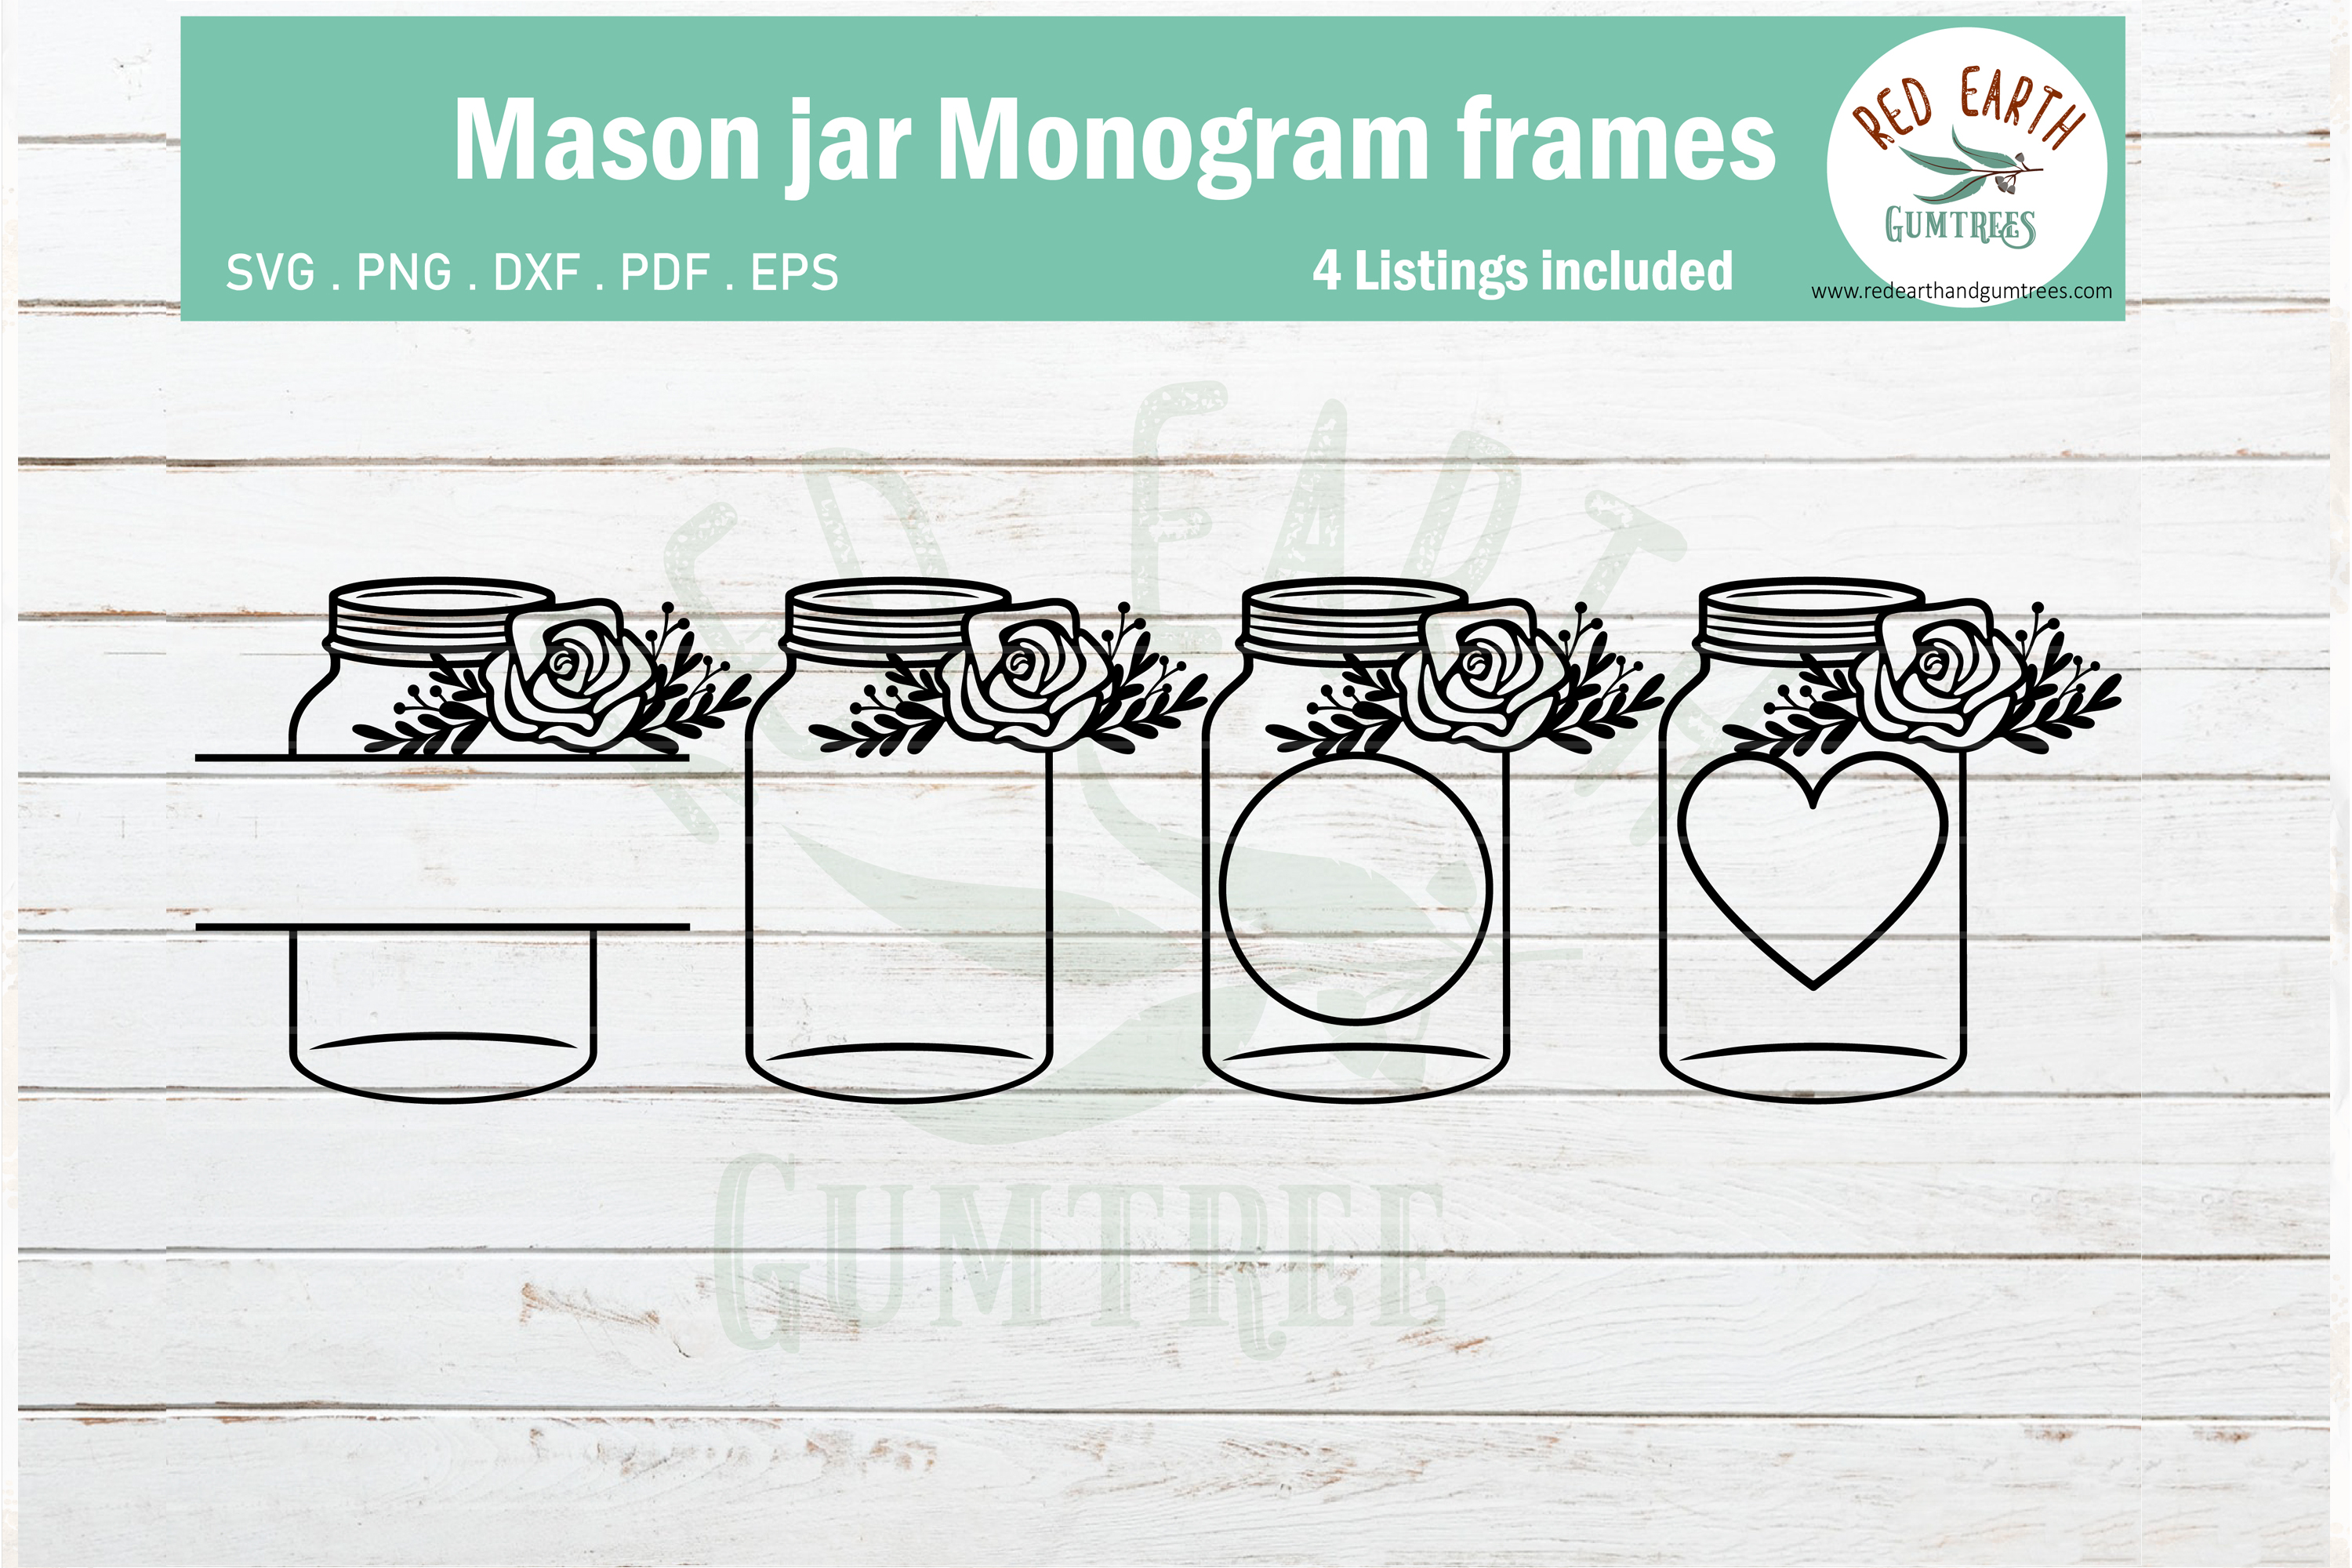 Floral mason jar, wedding mason jar monogram SVG,PNG,DXF,EPS example image 1